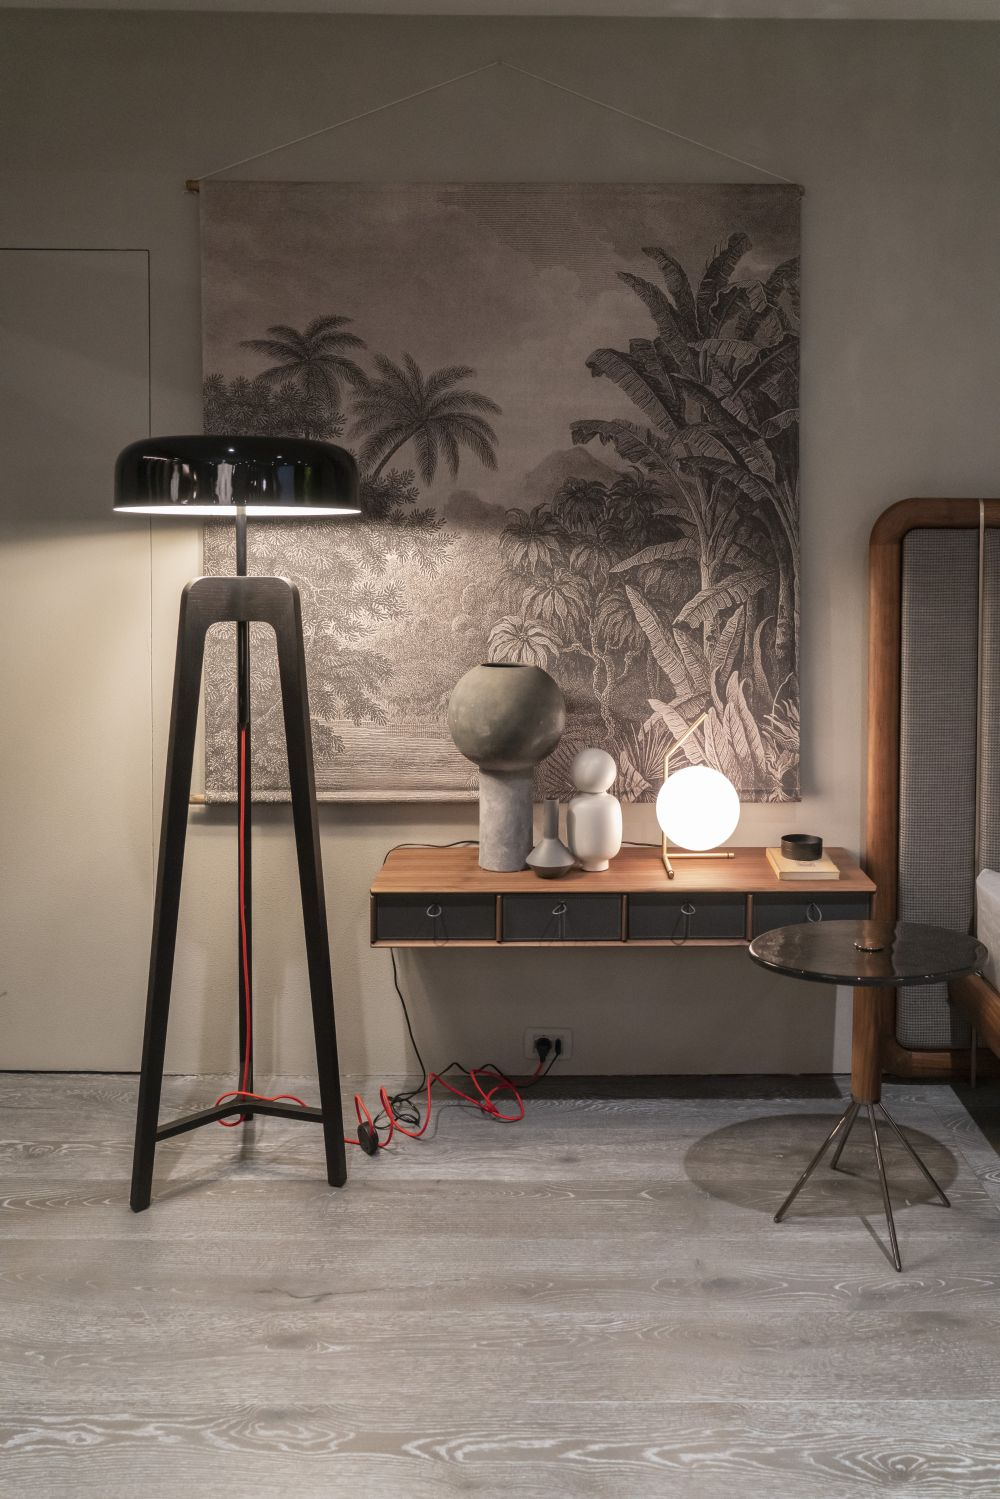 Porada pielo floor lamp - Lighting Fixtures that Will Add a Bid Dose of Drama to Your Room